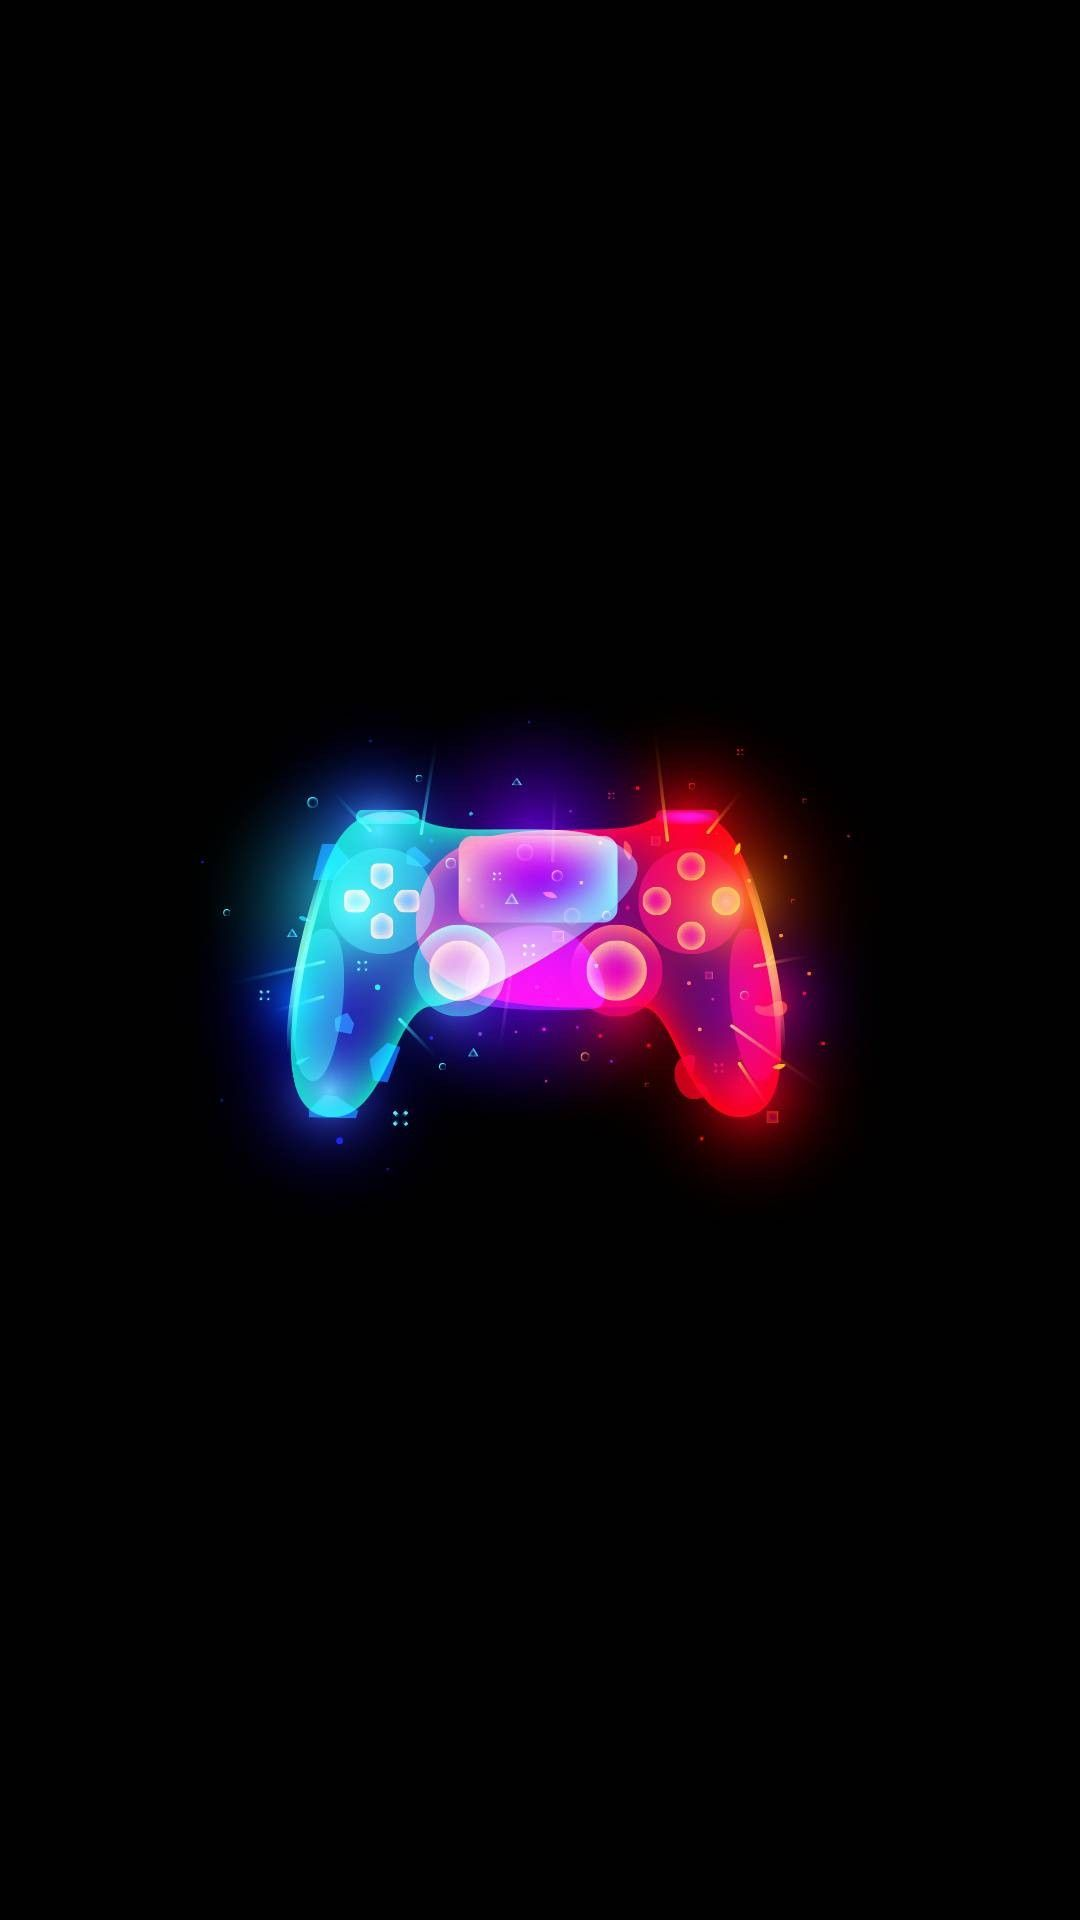 Playstation 4 Controller In 2020 Game Wallpaper Iphone Gaming Wallpapers Go Wallpaper